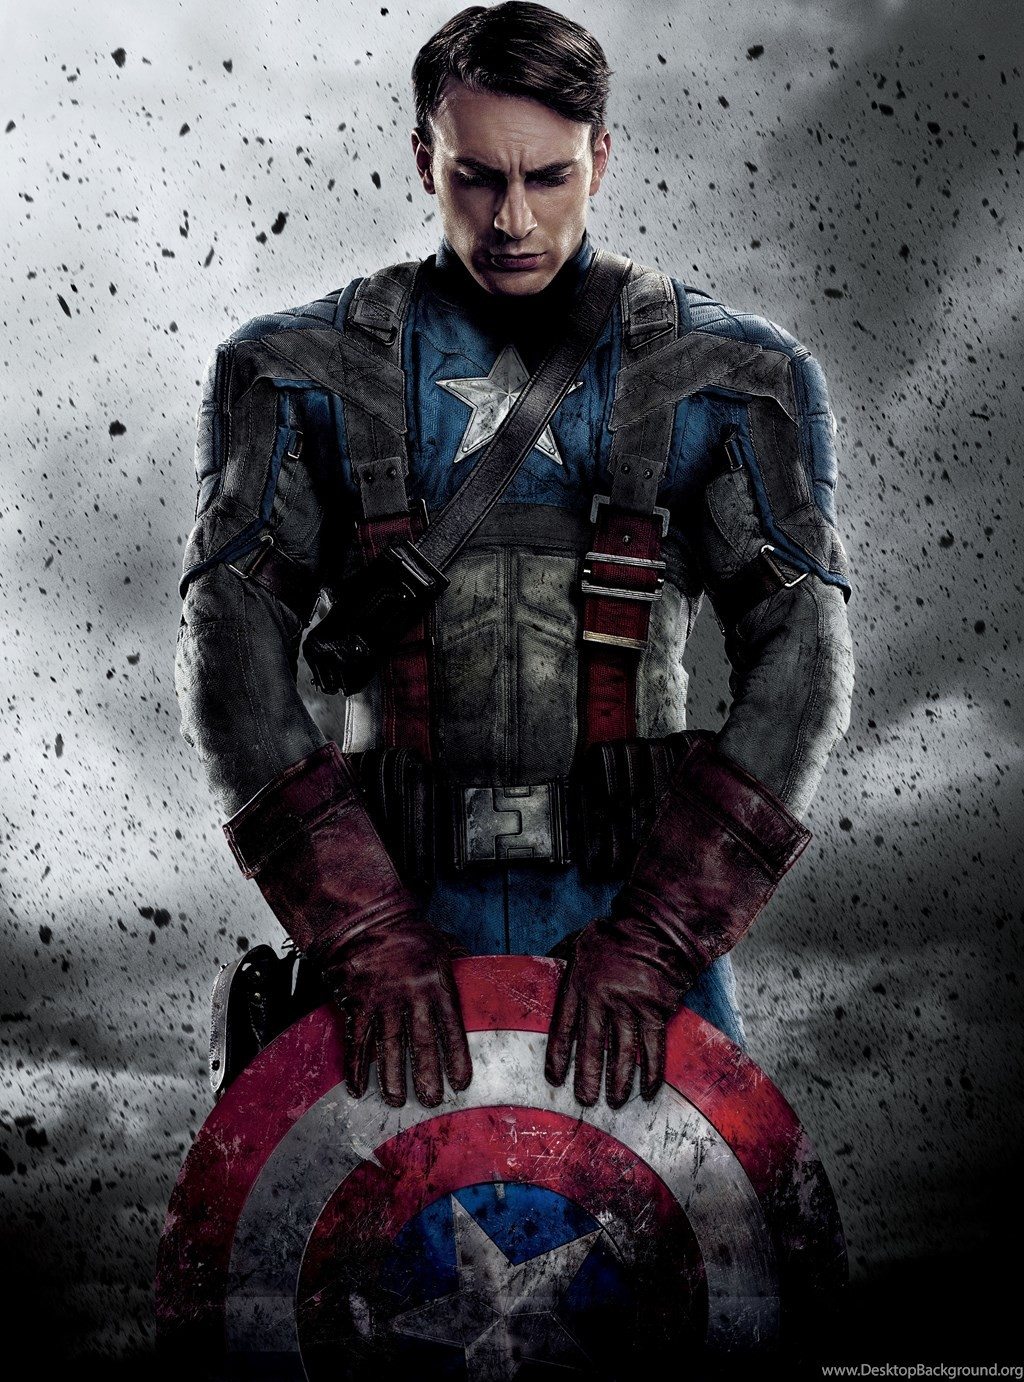 Nick tam 1030684 hd captain america the first avenger wallpapers 3705x5000 h